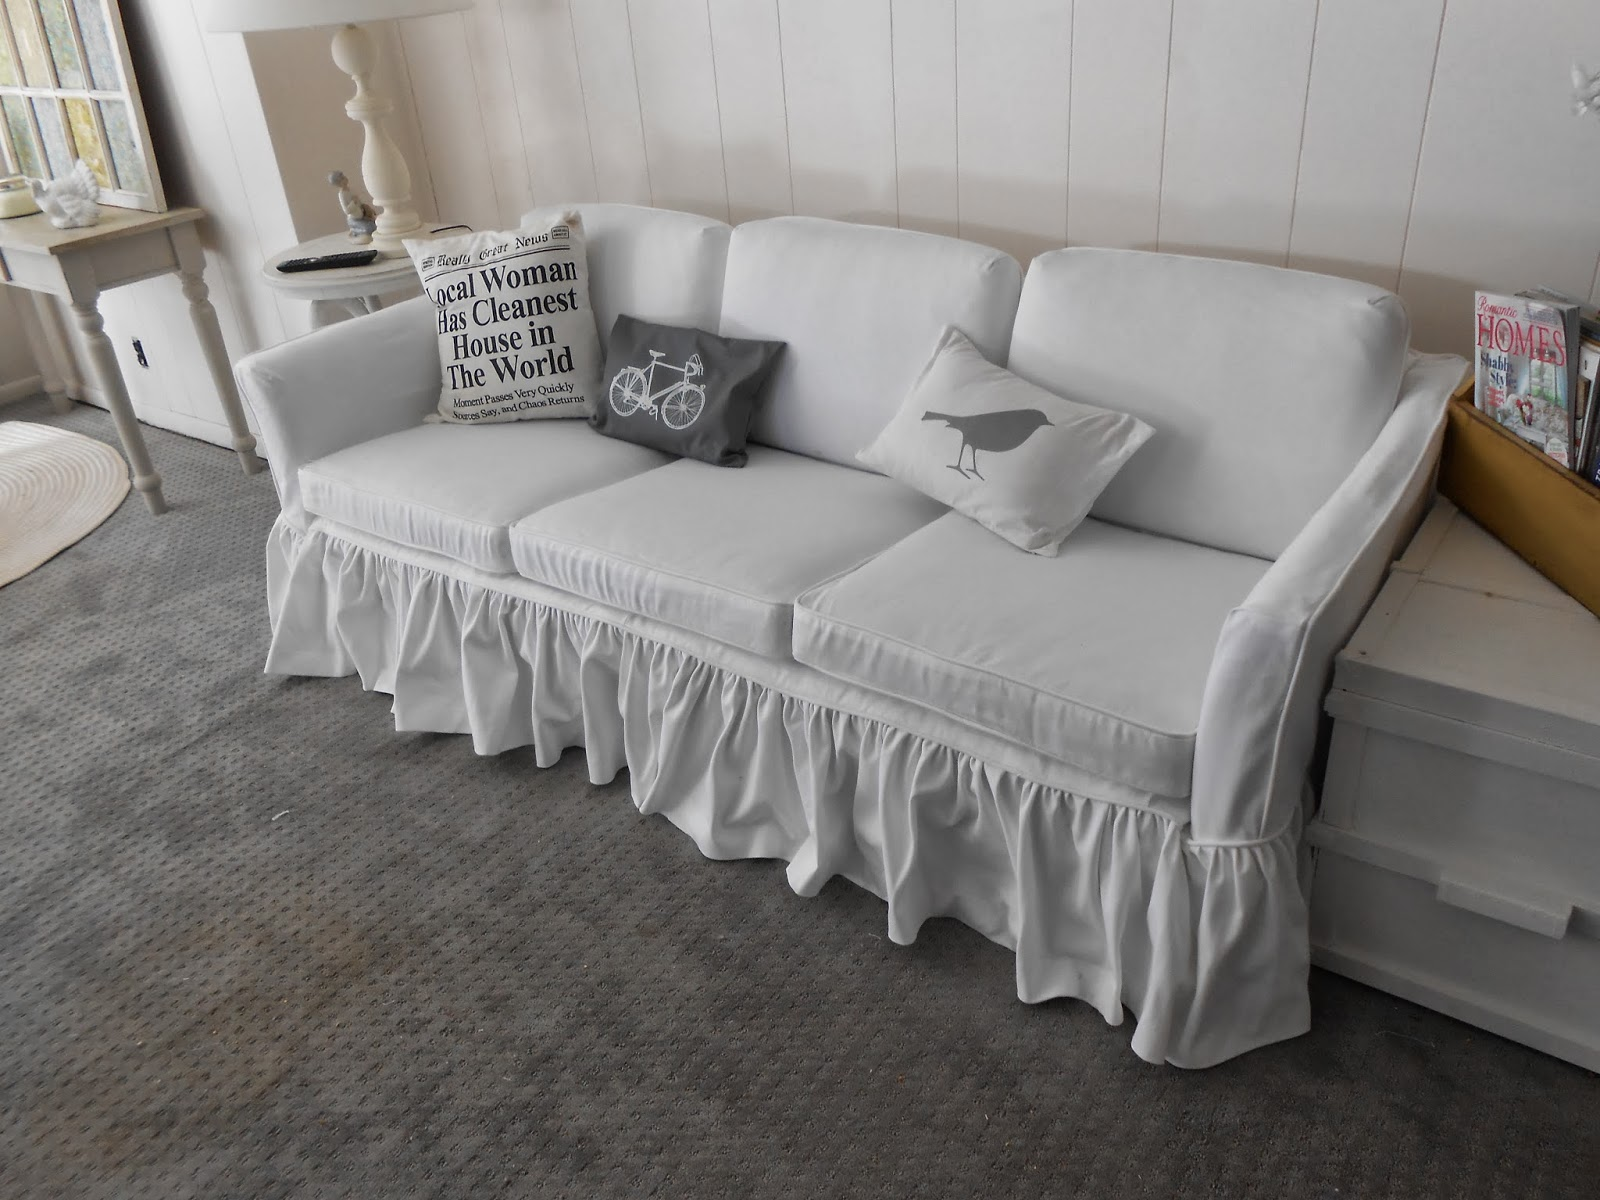 Surprising 6 Cushion Sofa With A Ruffled Skirt Pdpeps Interior Chair Design Pdpepsorg